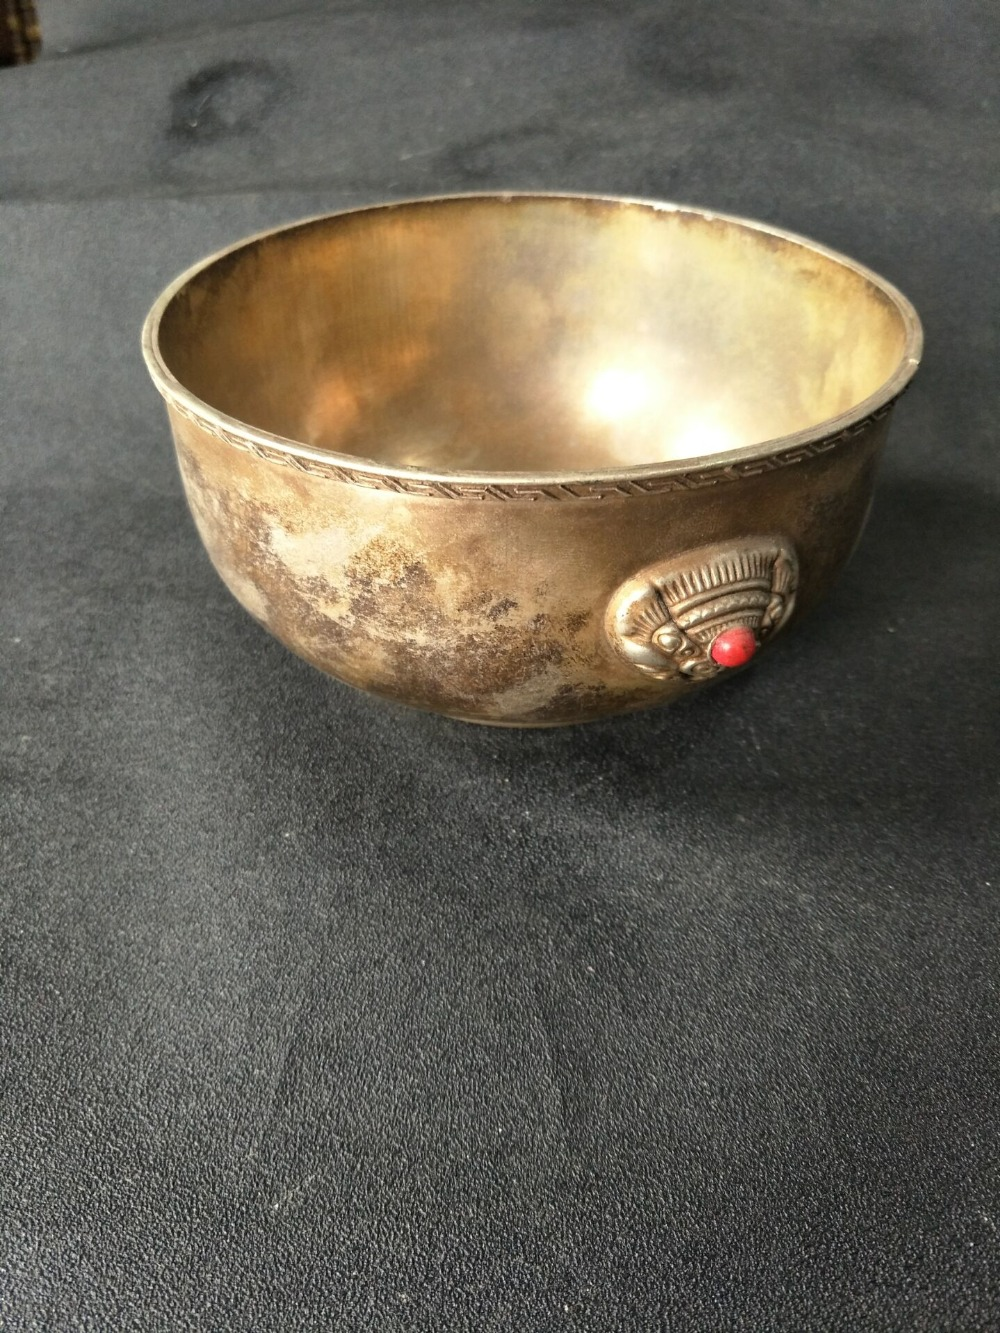 Antique collection Old Qing Dynasty silver bowl, carved animal face, set with precious stones,with mark , free shippingAntique collection Old Qing Dynasty silver bowl, carved animal face, set with precious stones,with mark , free shipping